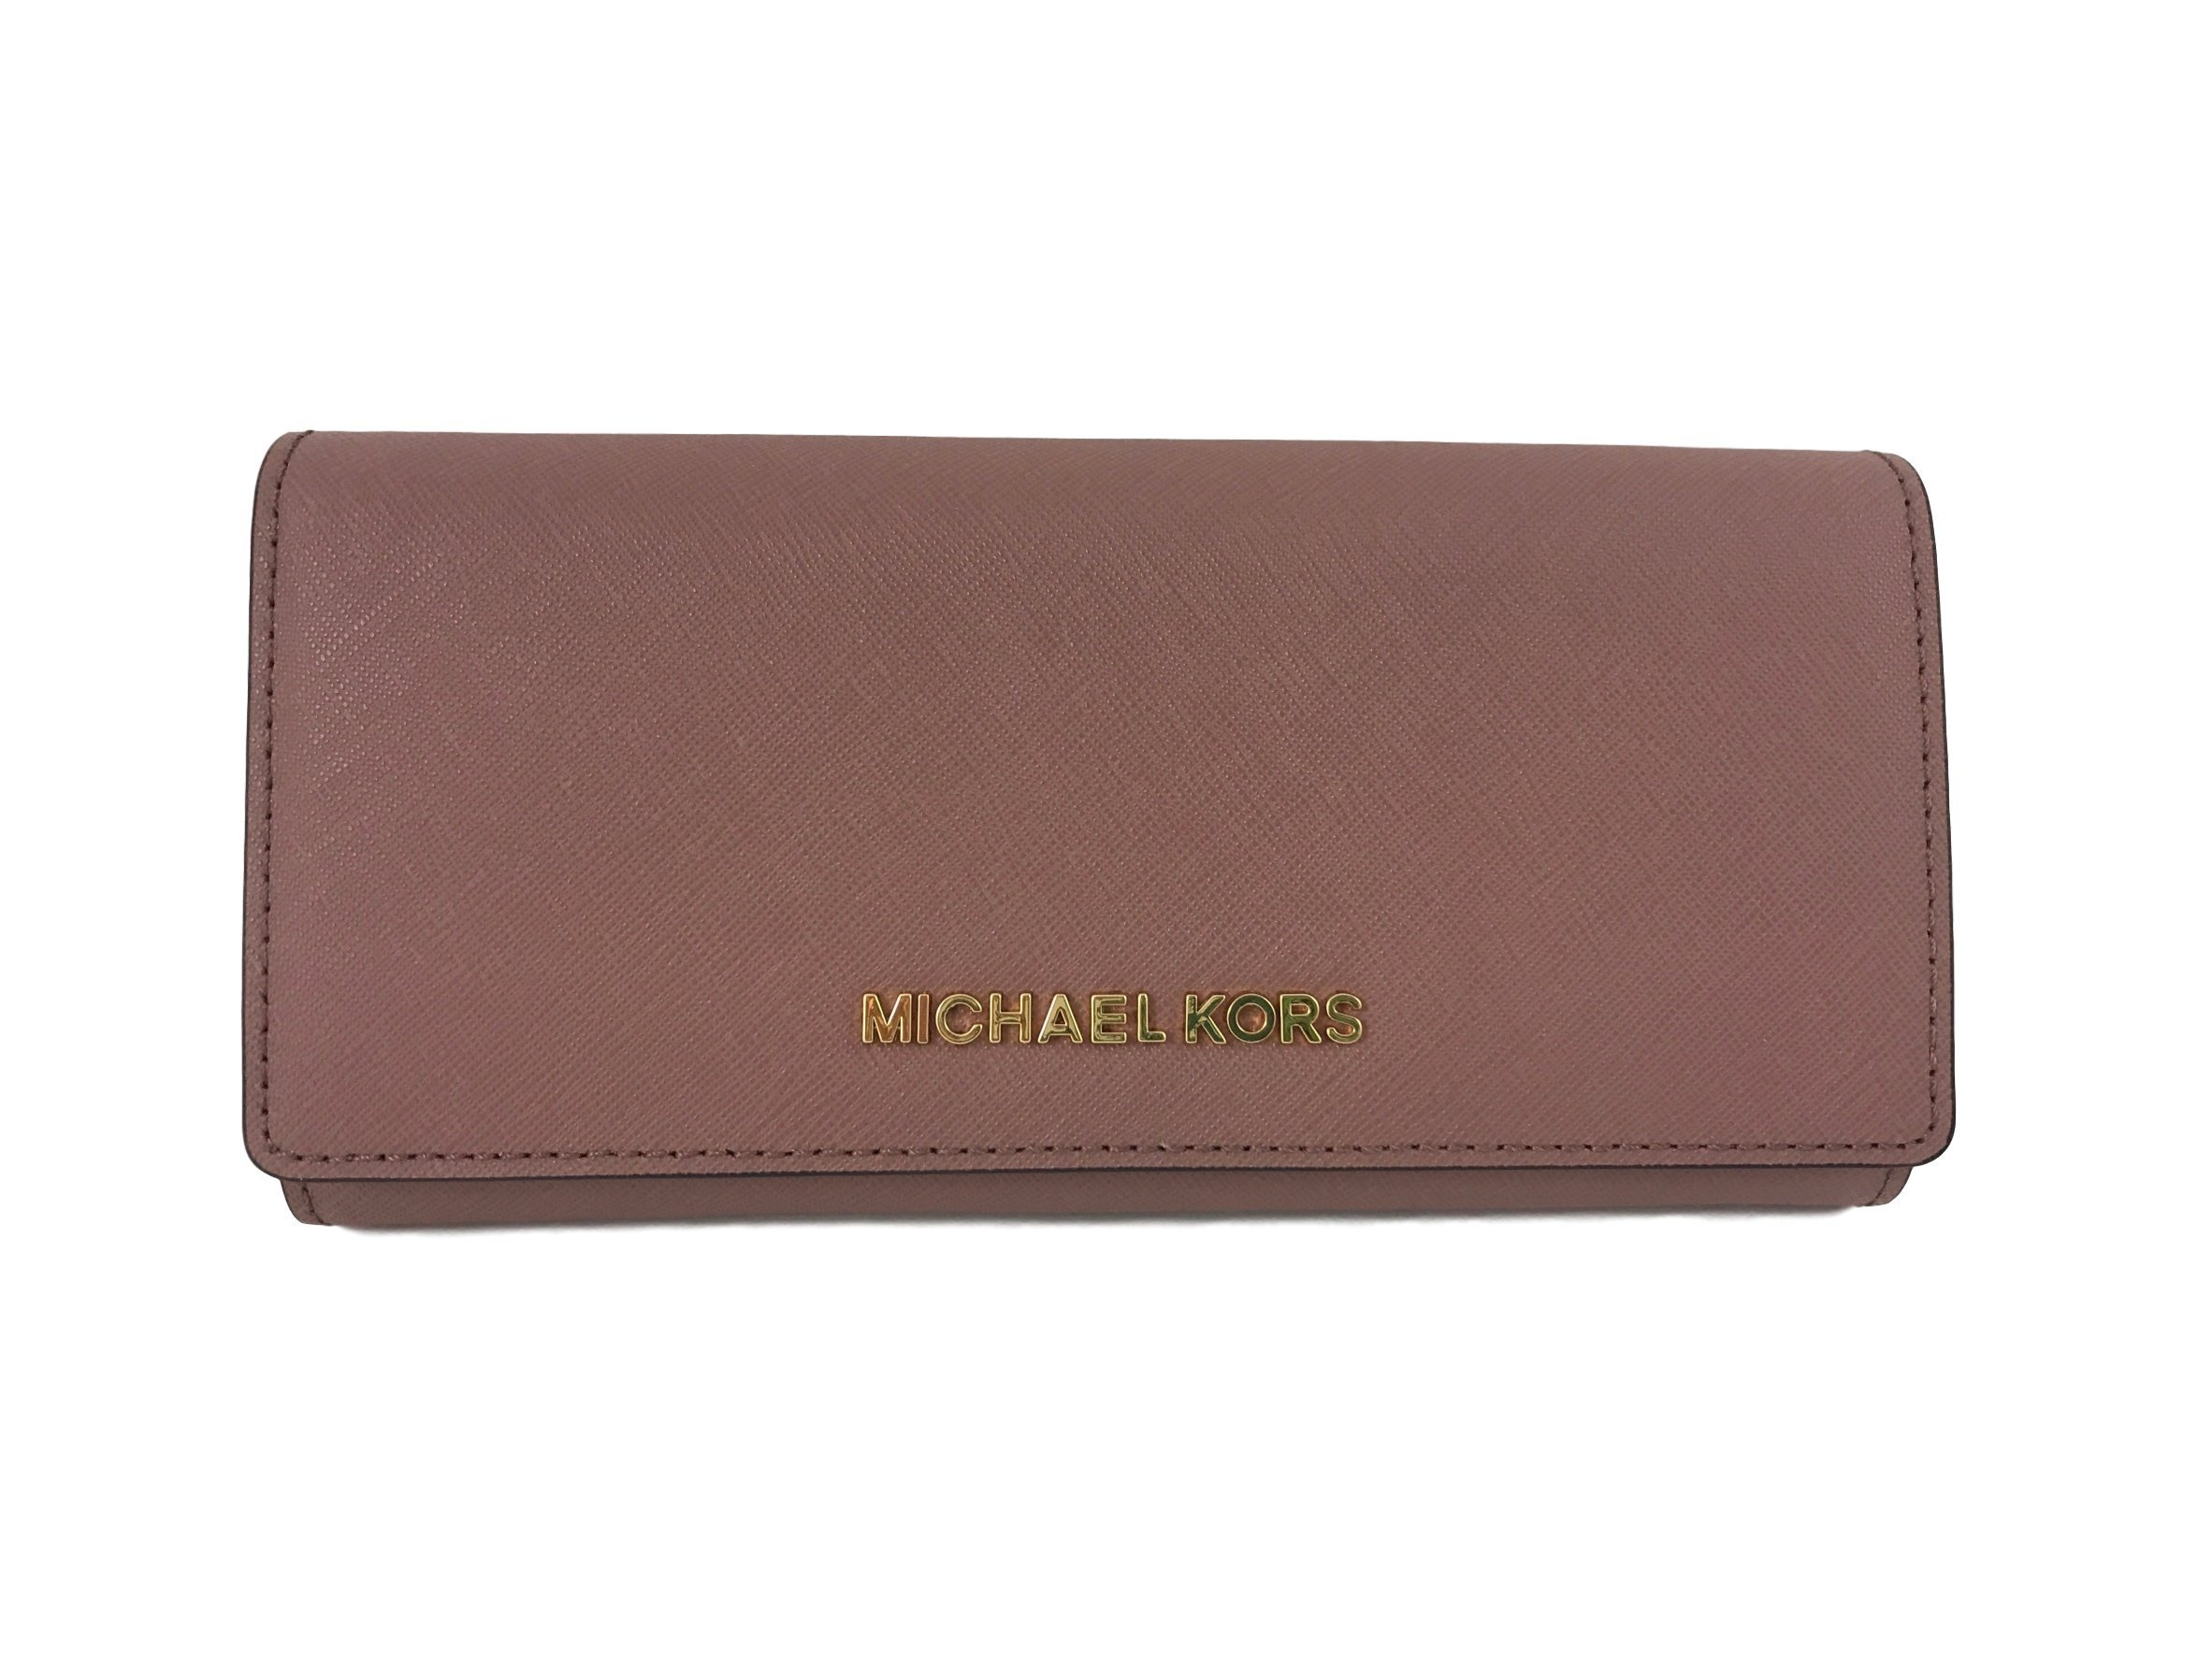 Michael Kors Jet Set travel Carryall Leather Clutch wallet in Dusty Rose